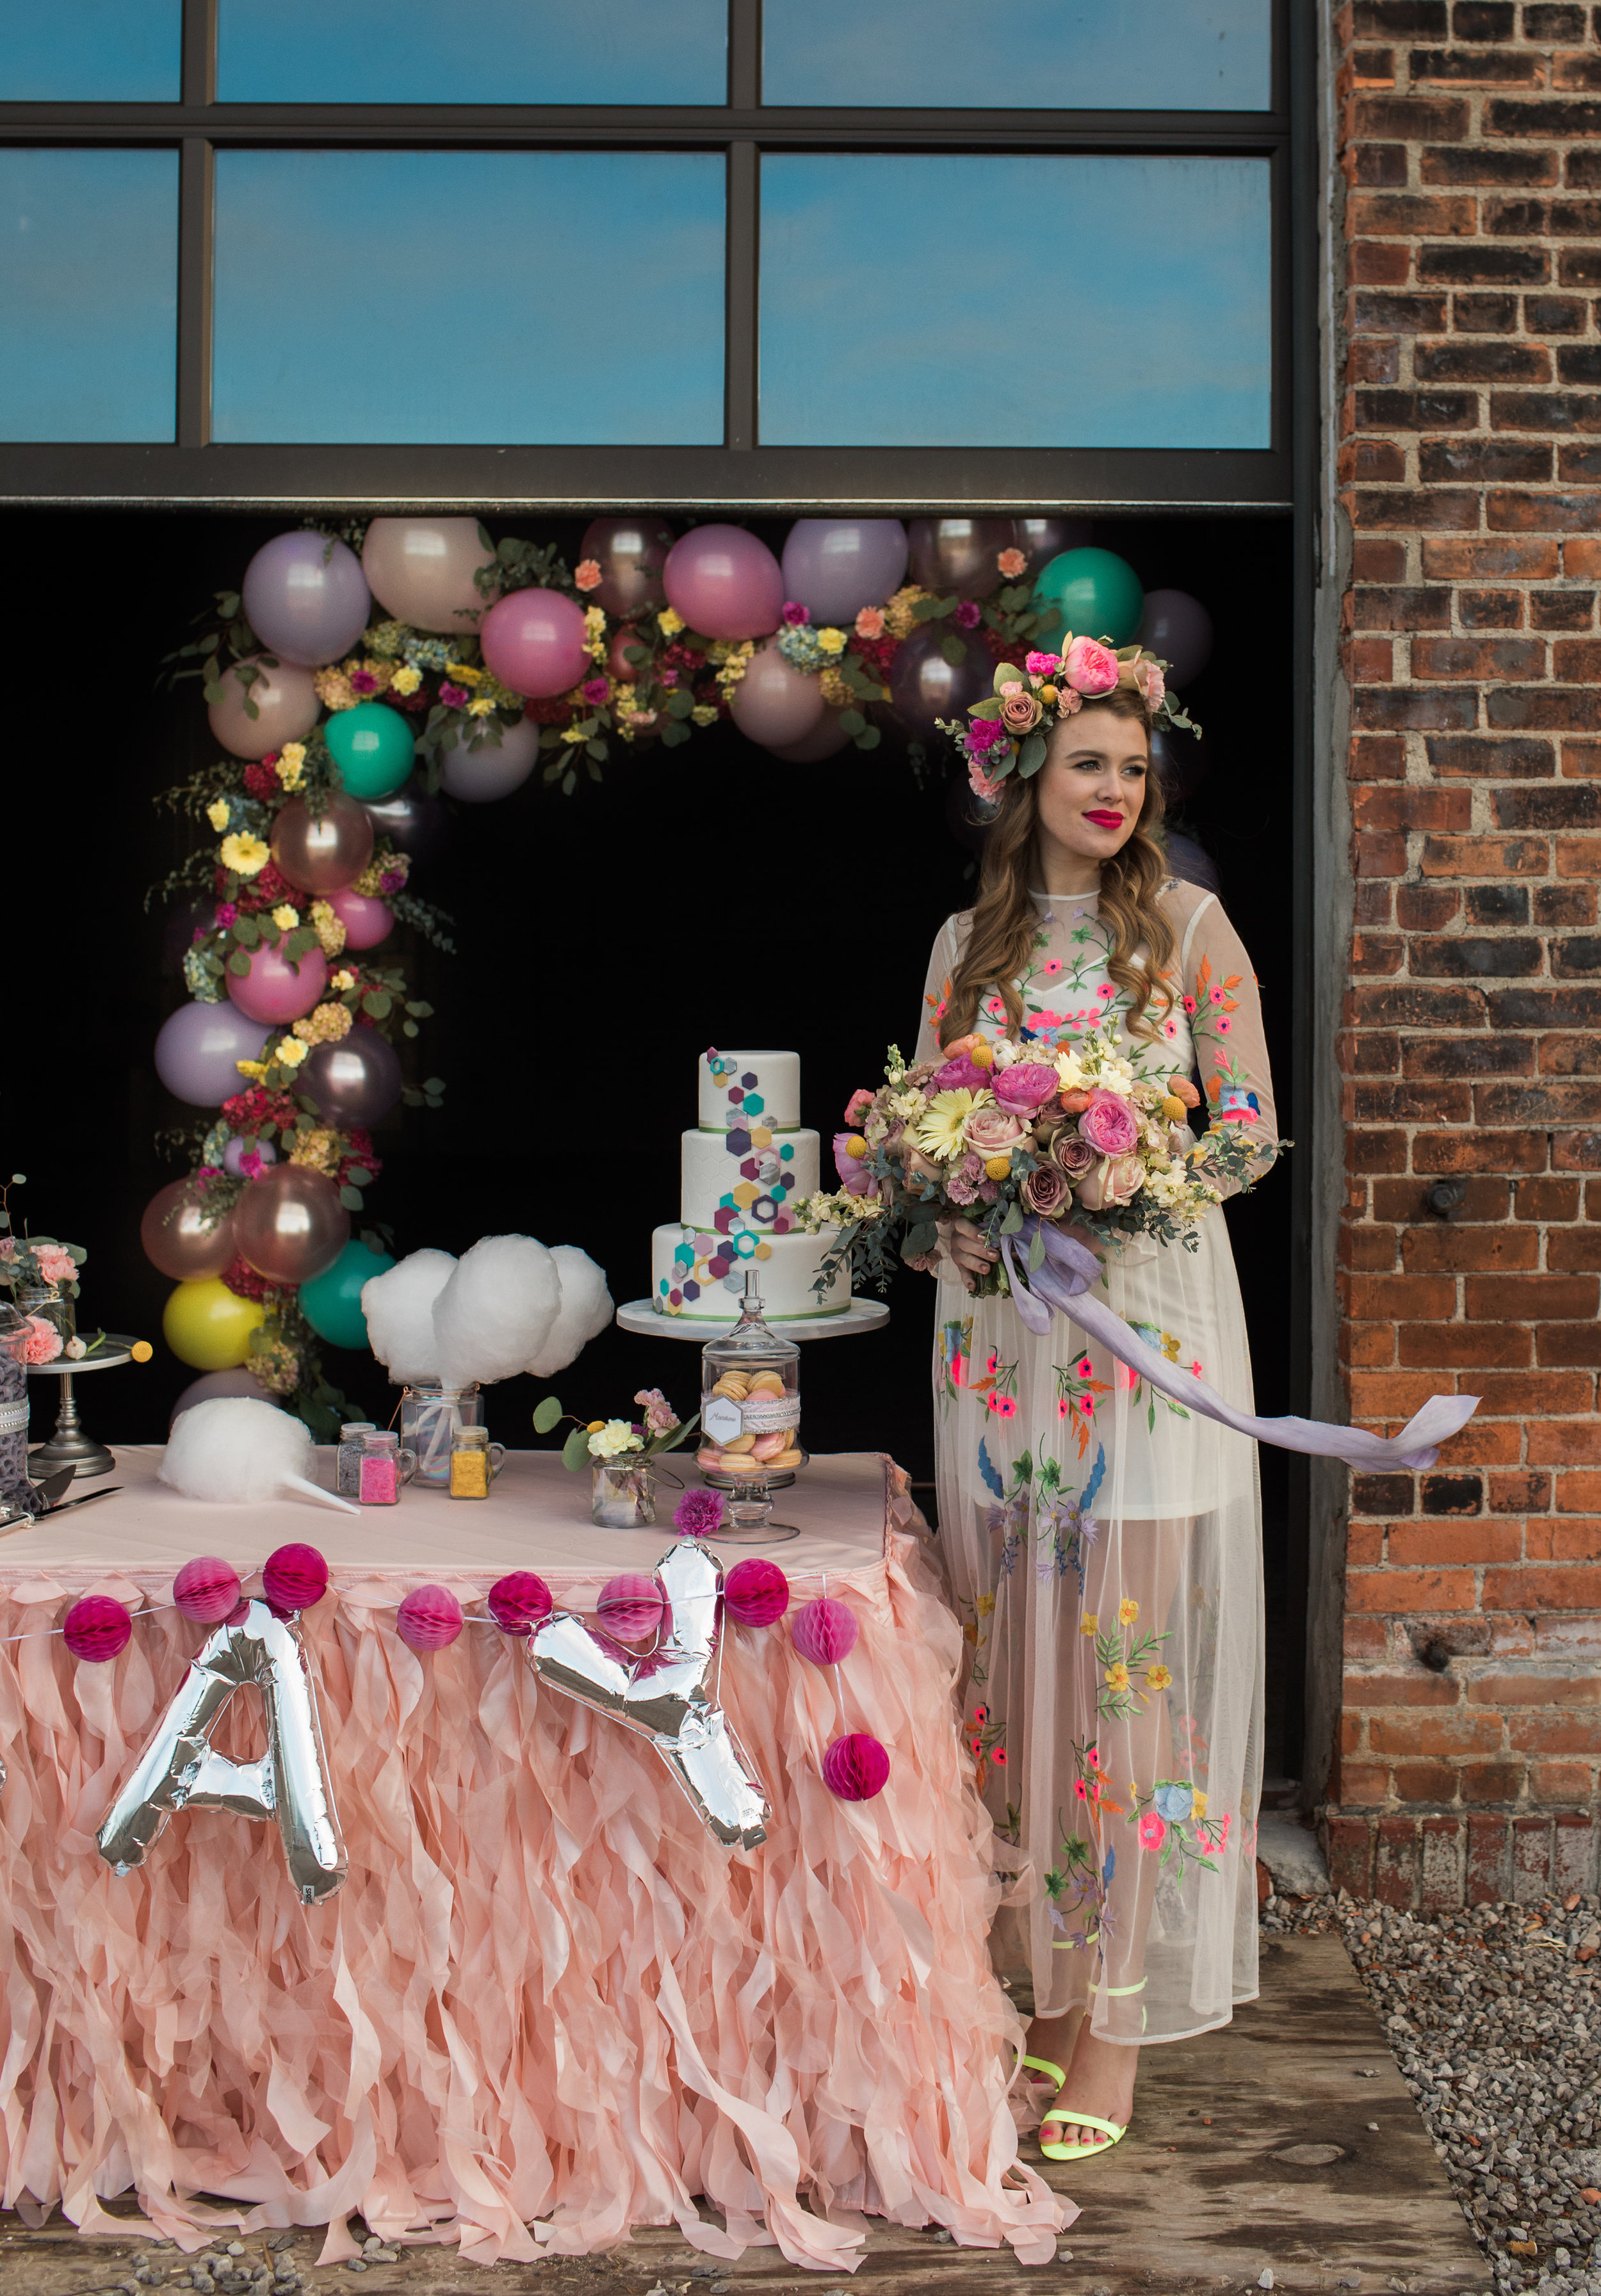 photo by  Casey Brodley , hair and makeup by  Kyle Ann , model Erin Marie, cotton candy by  Spun Sugar Detroit , cake and desserts by  Bella e Dolce , flowers by  Floral Sense , ribbon by Rosemarine Textiles, event design by  Pixie Dust Events , rentals by  Special Occasions East